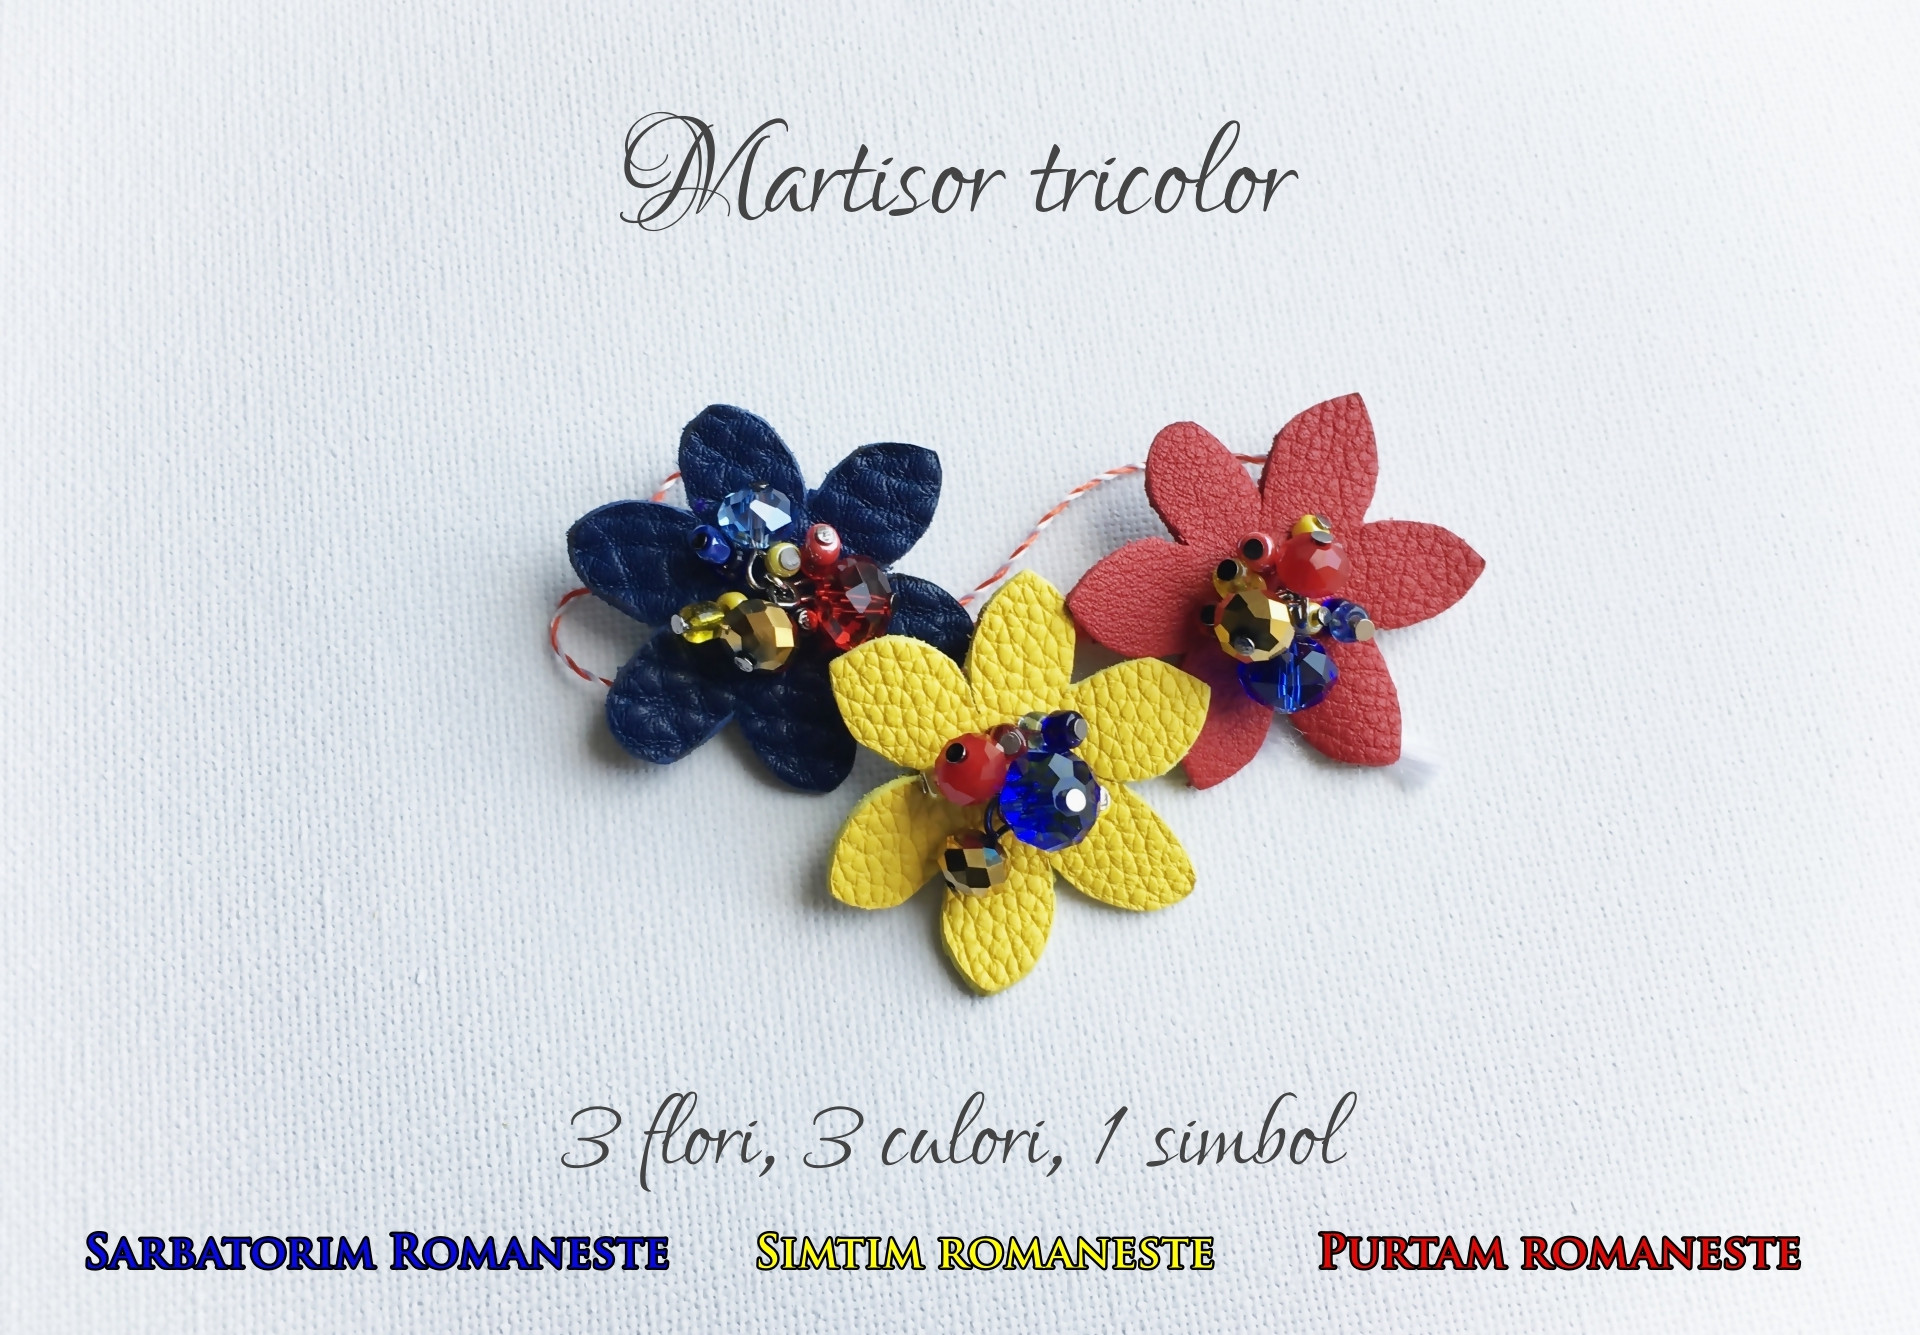 martisor tricolor sashaccessories by gia